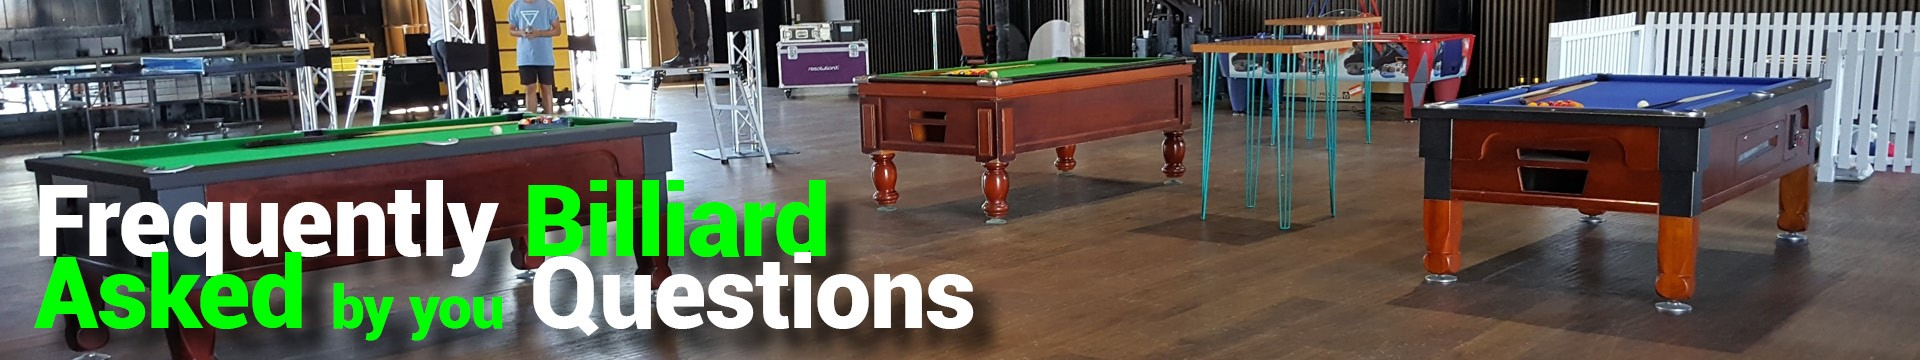 pool-snooker-biliard-products-017.jpg